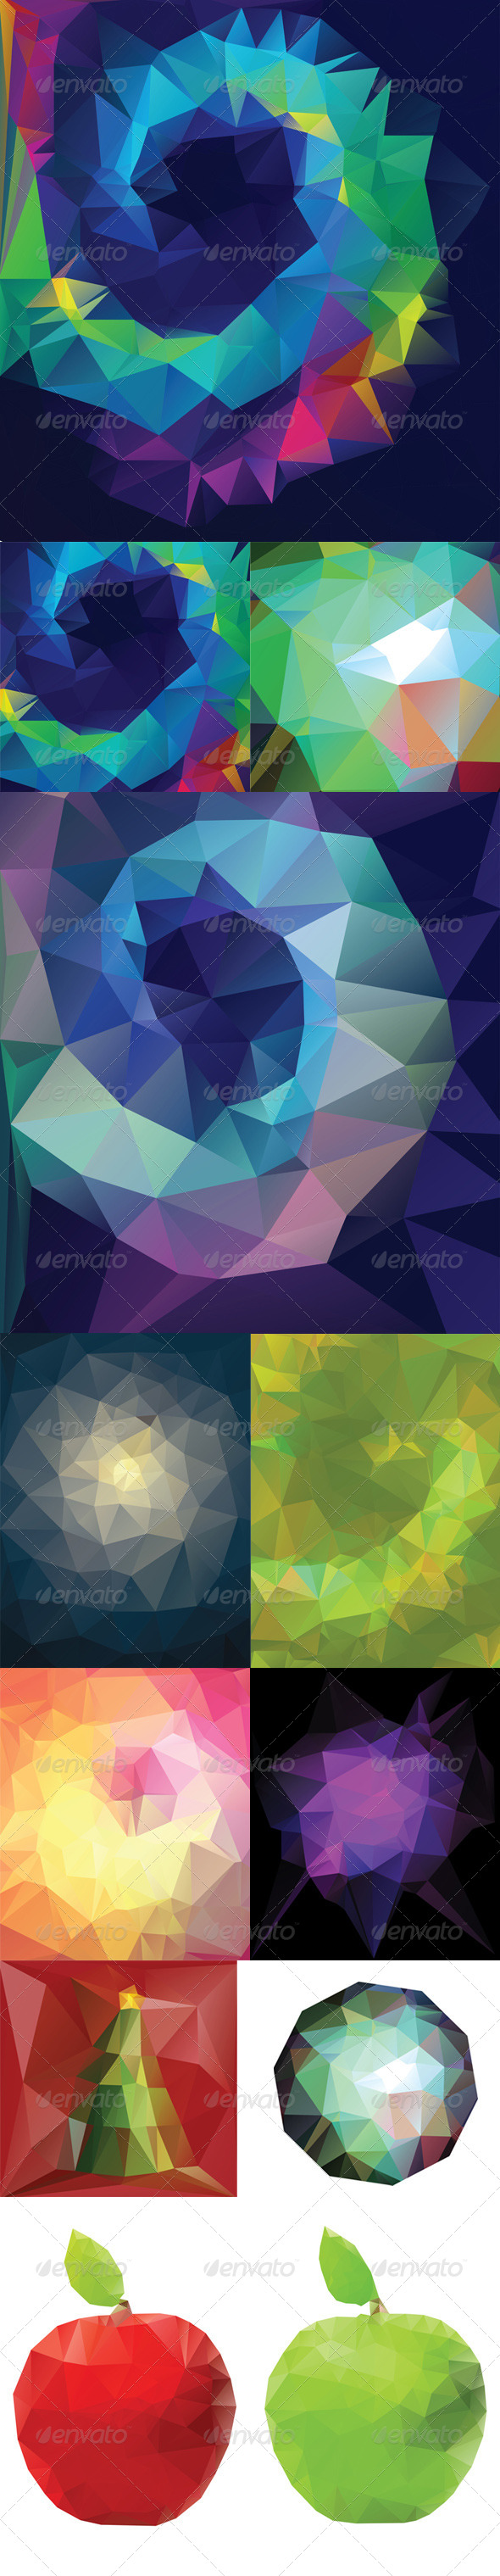 GraphicRiver Abstract Geometric Background 8409779